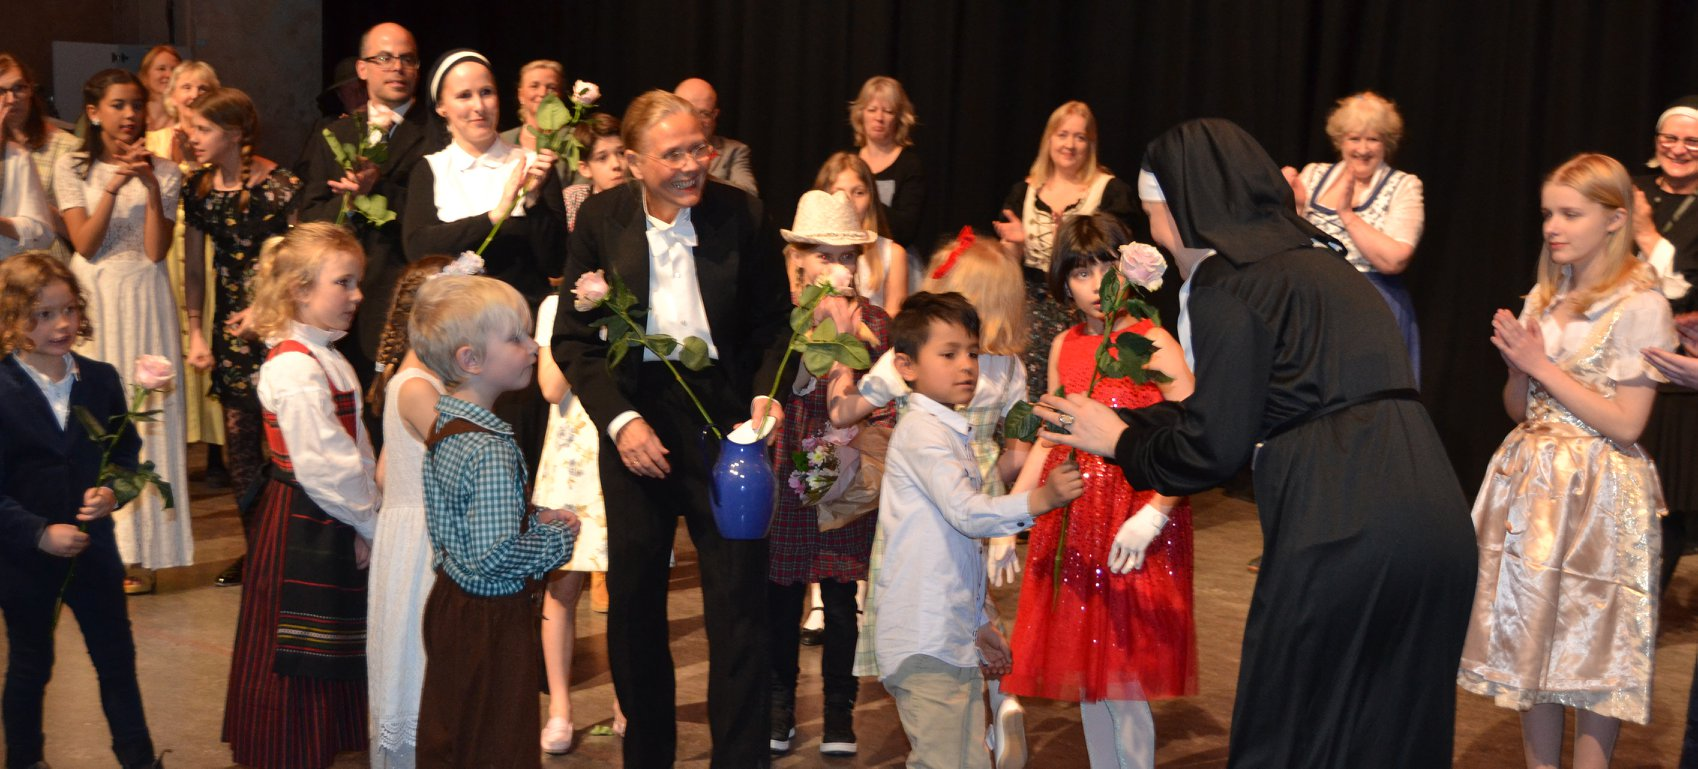 Sound of Music 23 mars Danderyds Gymnasium